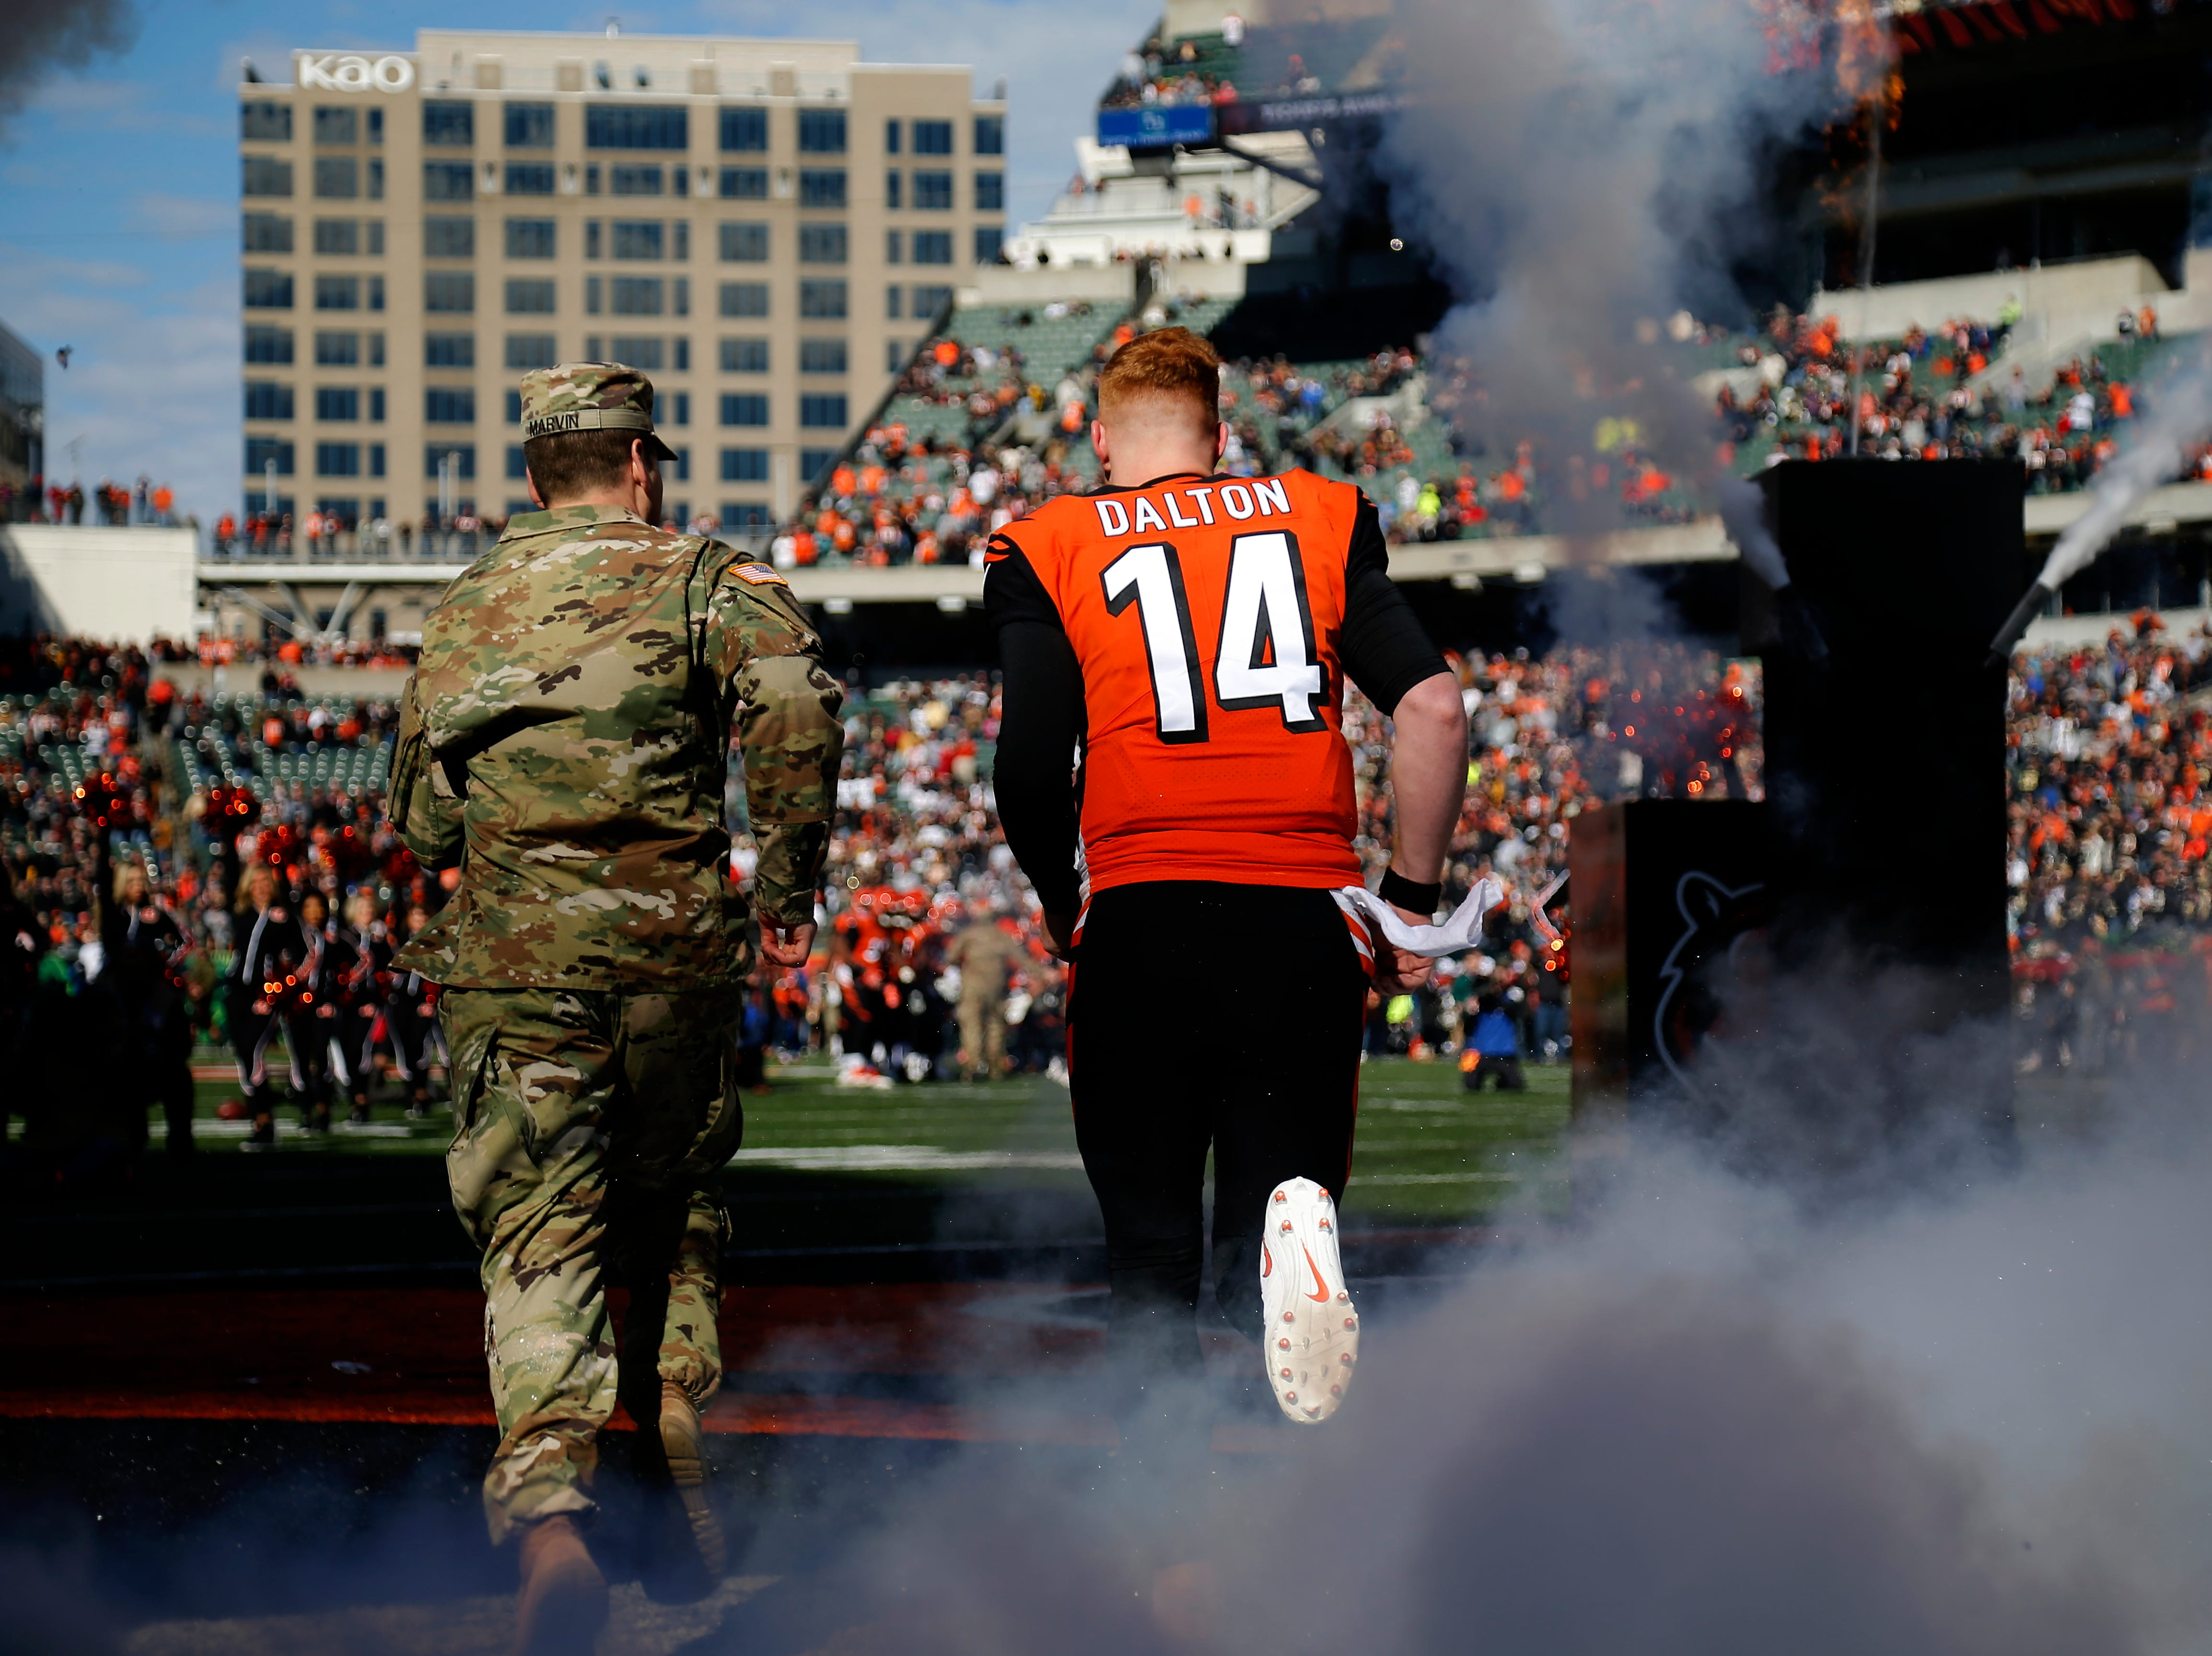 Cincinnati Bengals quarterback Andy Dalton (14) and his military escort take the field for the Salute to Service game before the first quarter of the NFL Week 10 game between the Cincinnati Bengals and the New Orleans Saints at Paul Brown Stadium in downtown Cincinnati on Sunday, Nov. 11, 2018. The Saints led 35-7 at halftime.